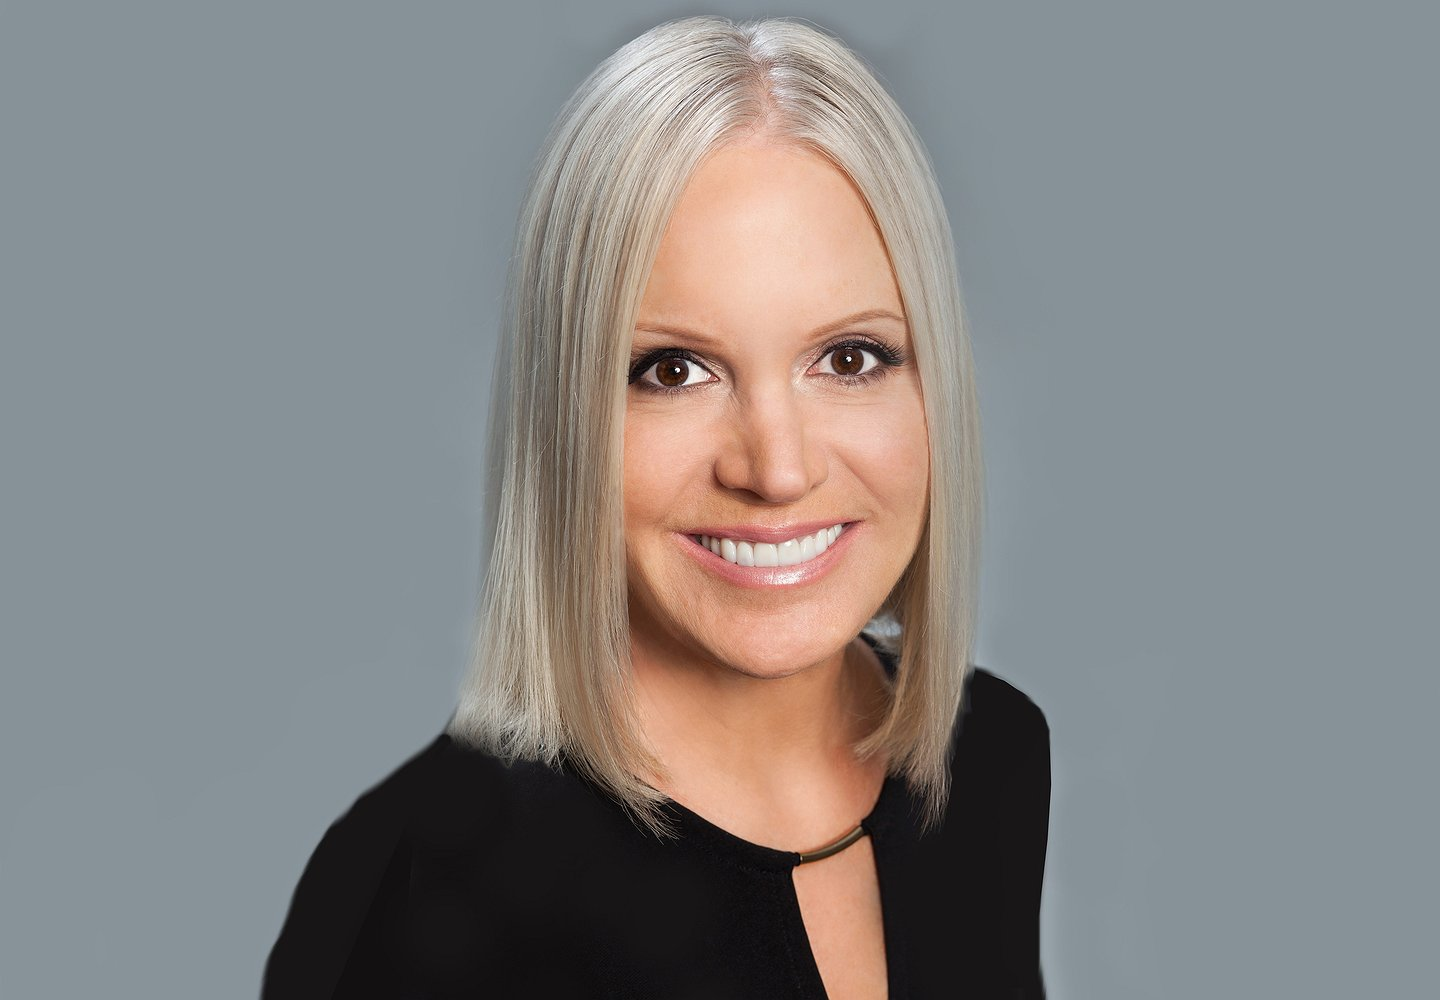 Crown Media's Michelle Vicary on the Power of the Brand